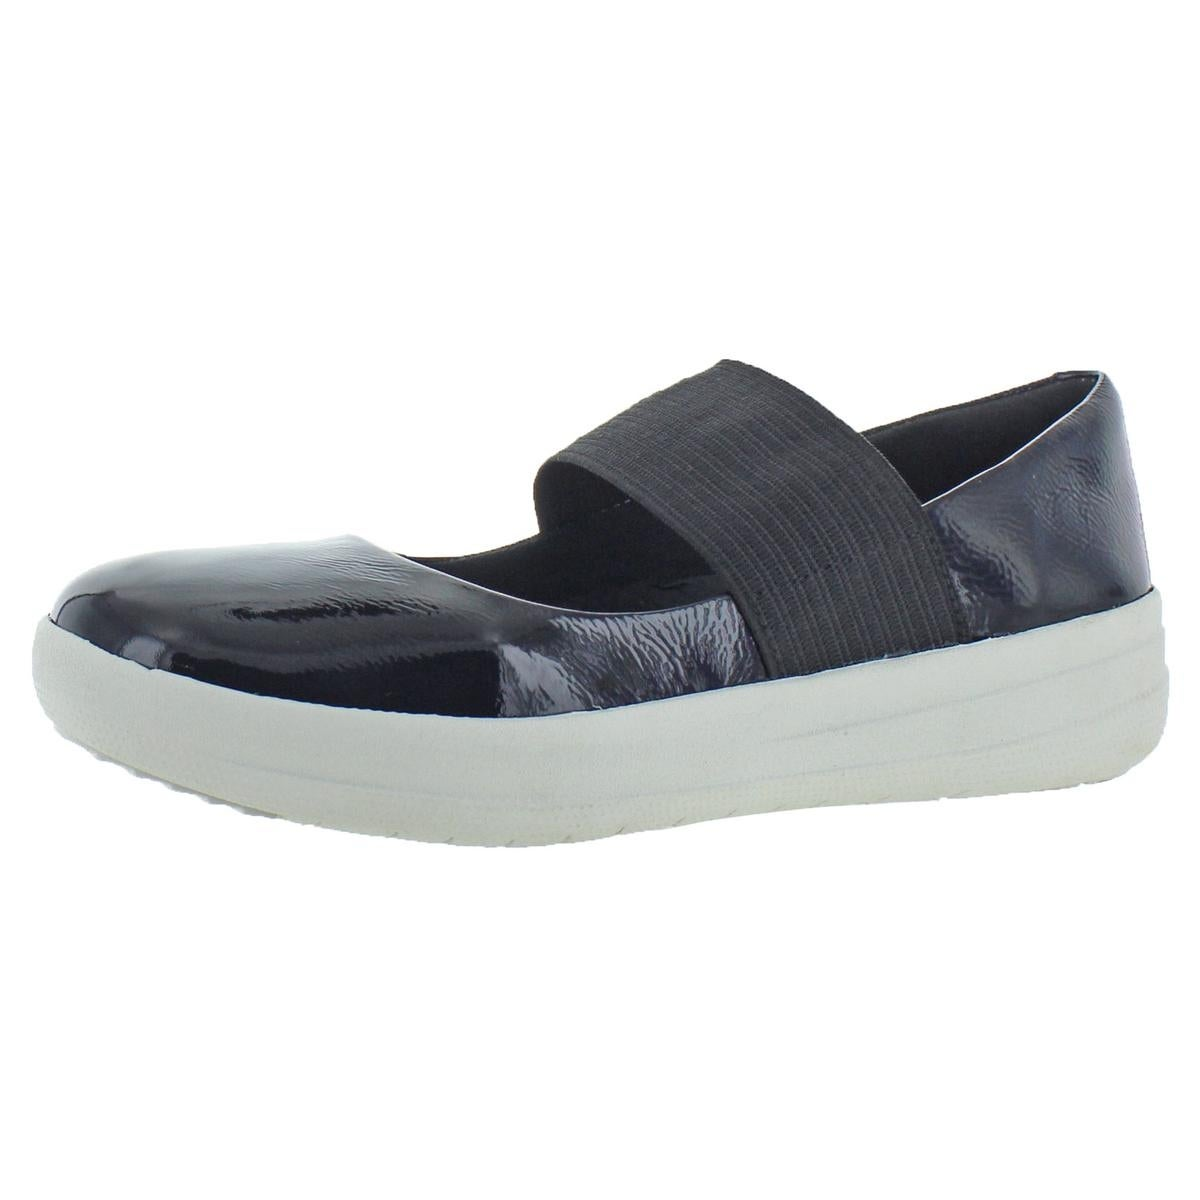 bddc6d714c5dec Shop Fitflop Womens F-Sporty Mary Jane Mary Janes Padded Insole Slip On -  On Sale - Free Shipping Today - Overstock - 26030373